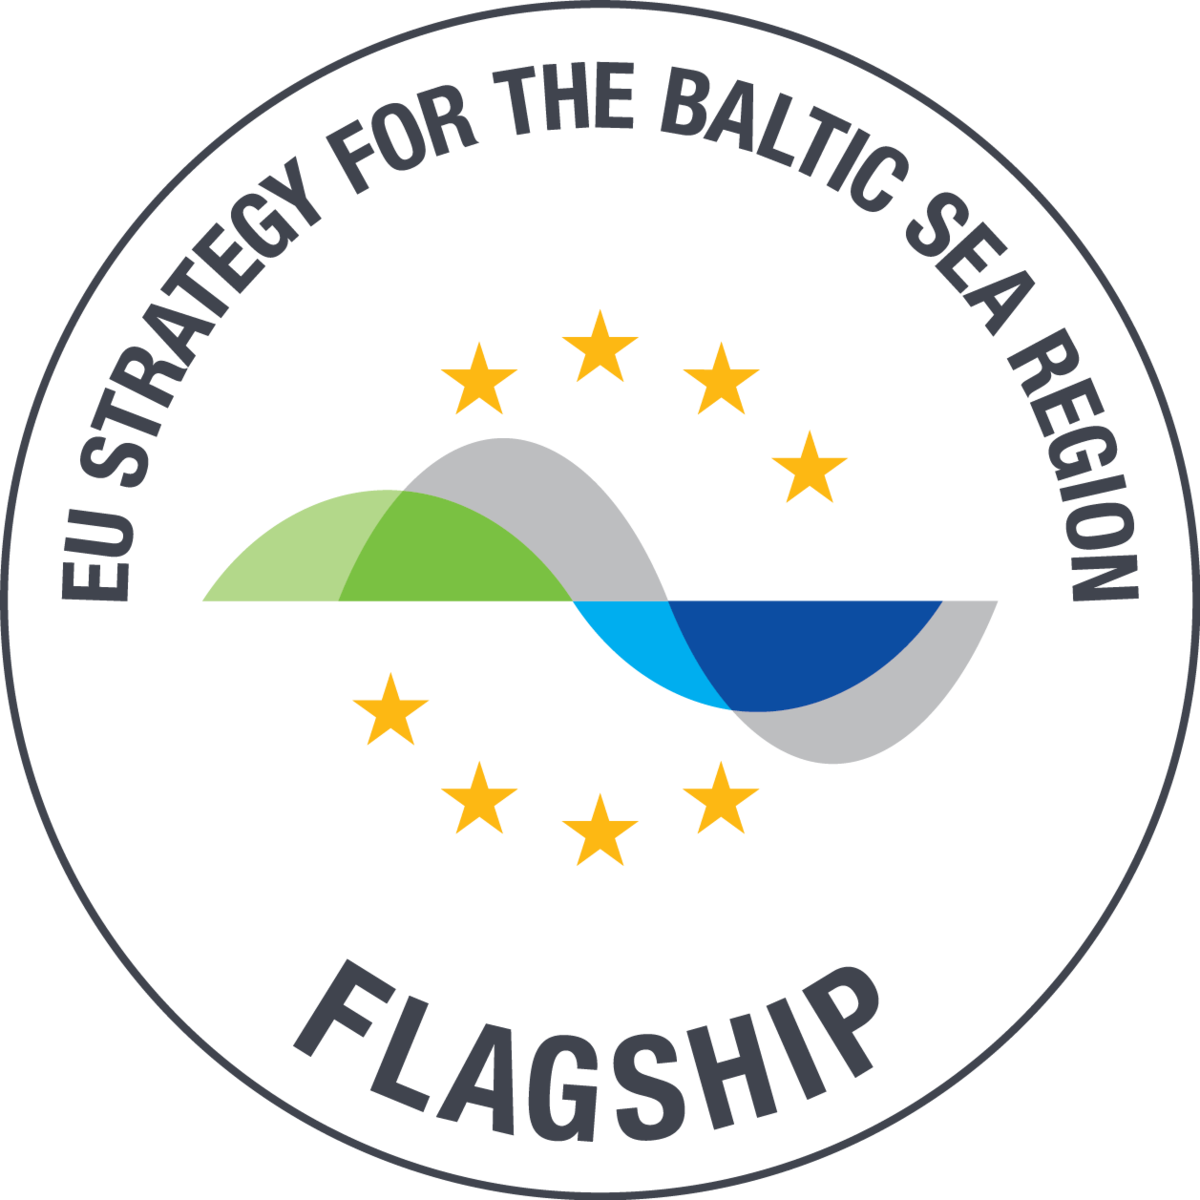 Ecoprodigi Is Now Flagship Of Eu Strategy For The Baltic Sea Region